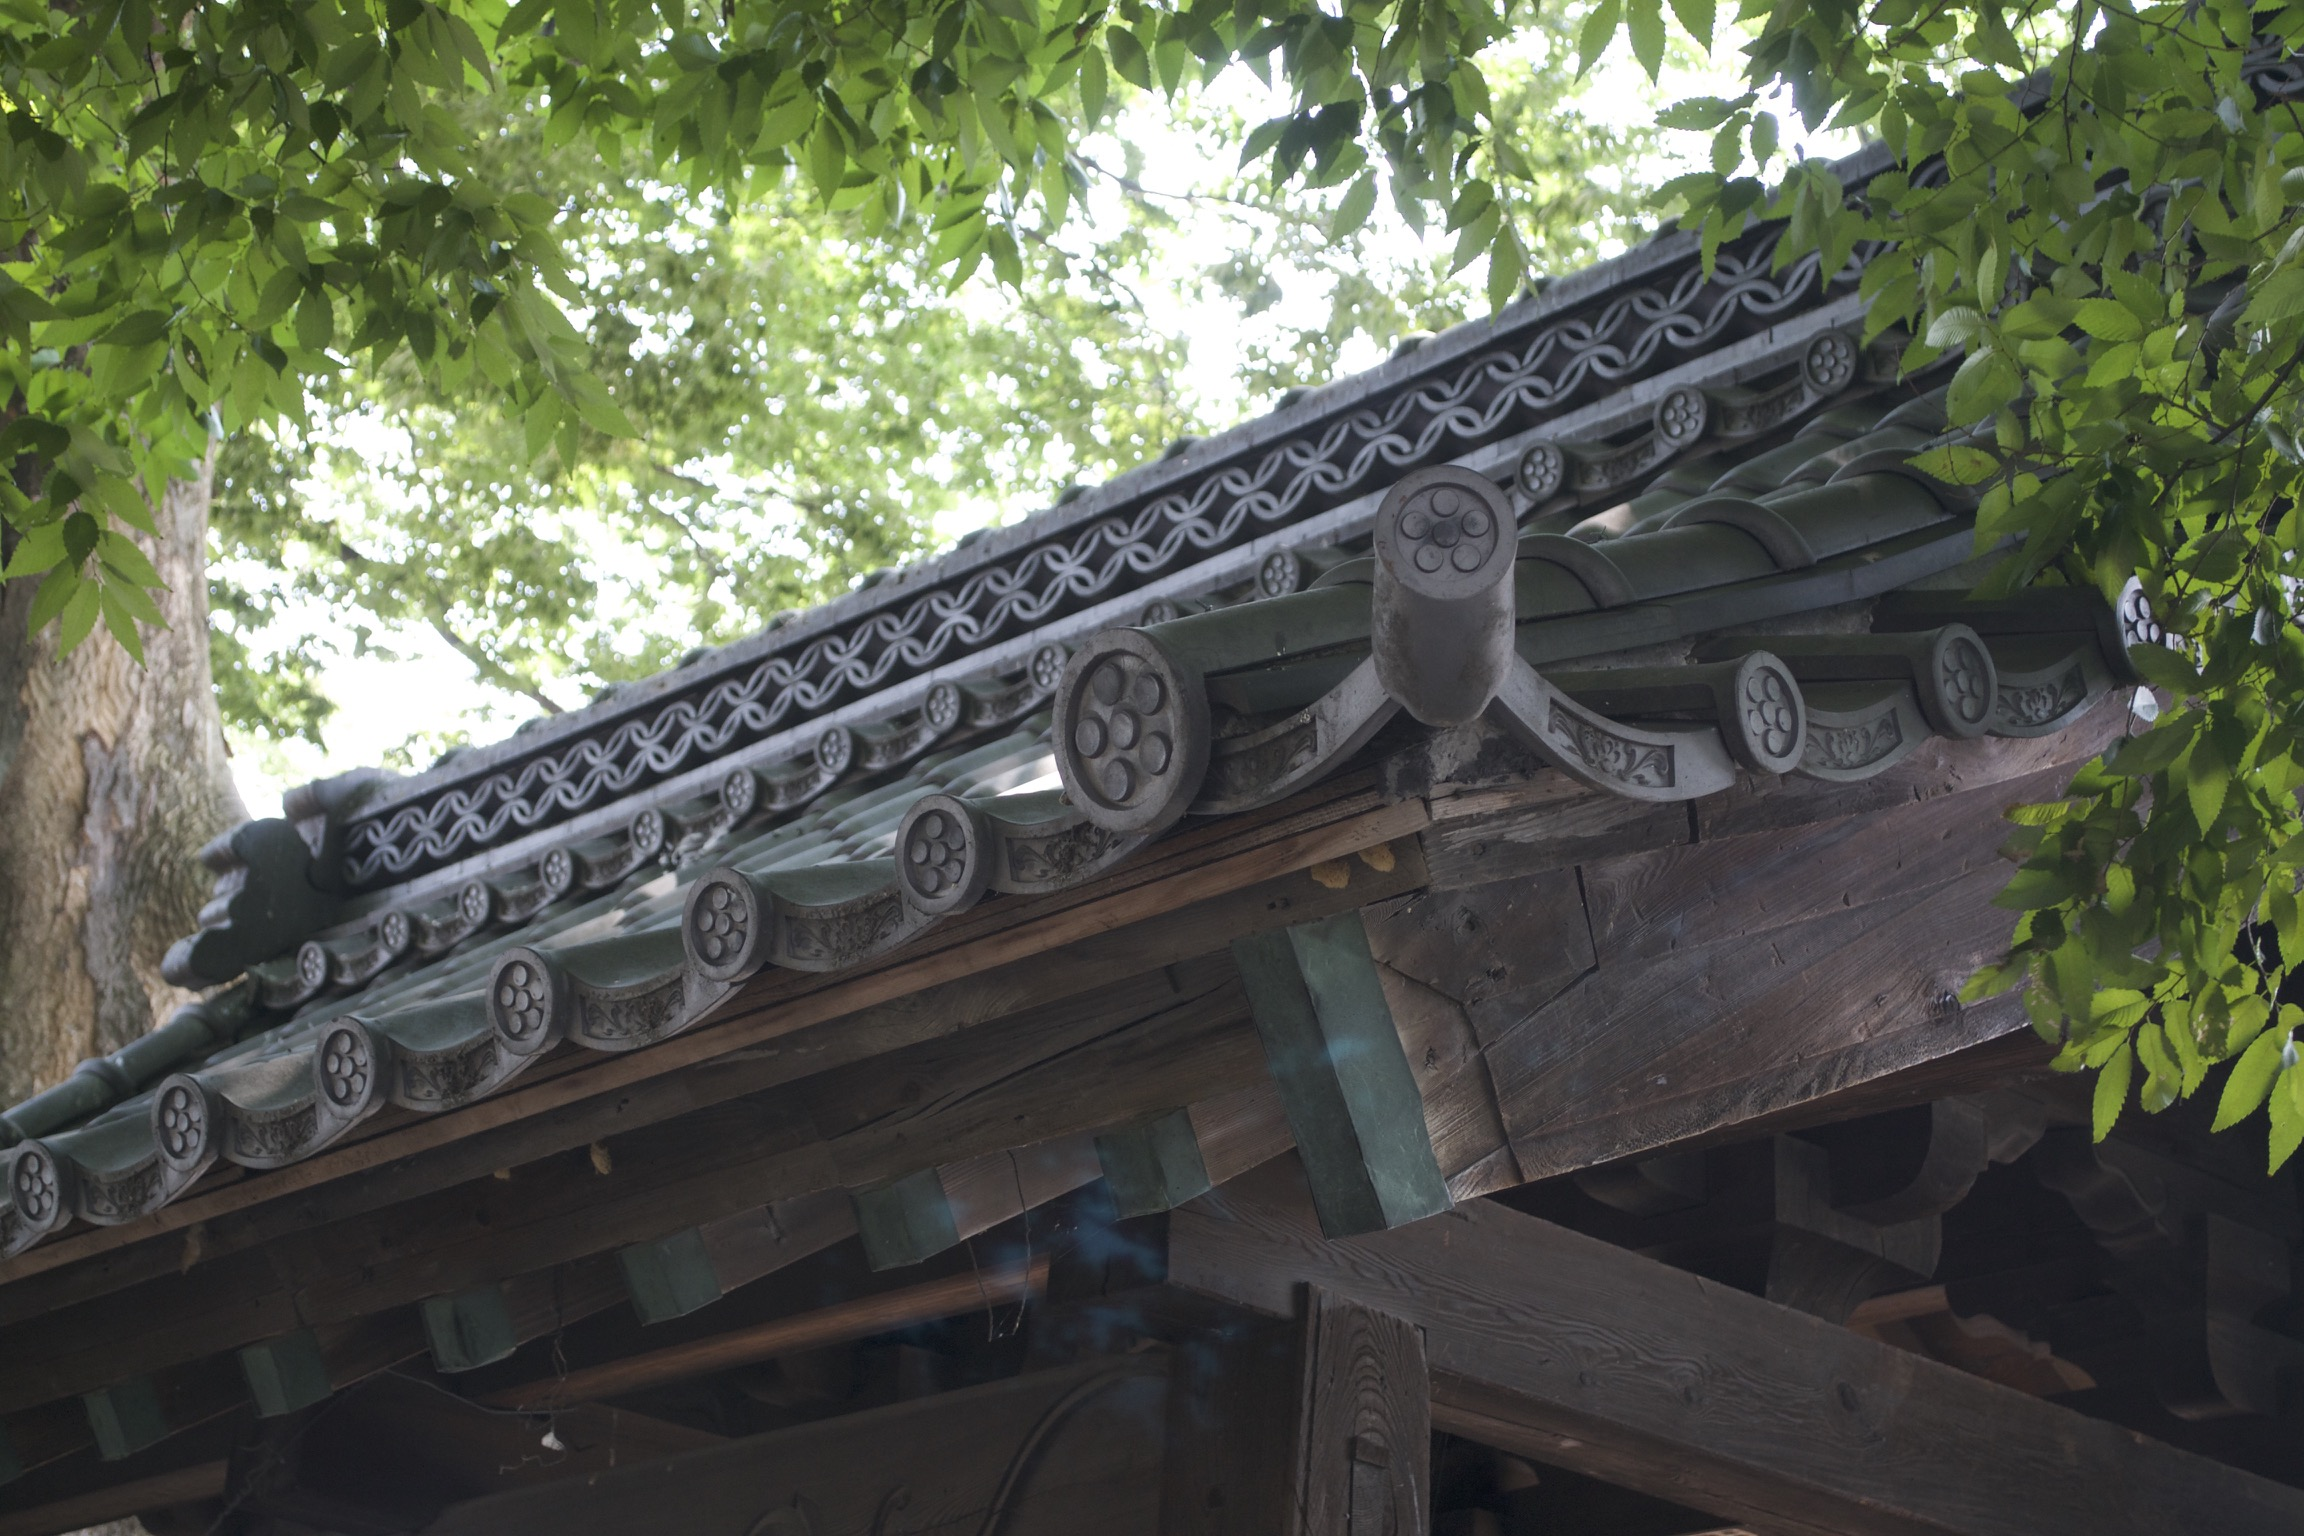 A closeup of roof tiles on a nearby temple.